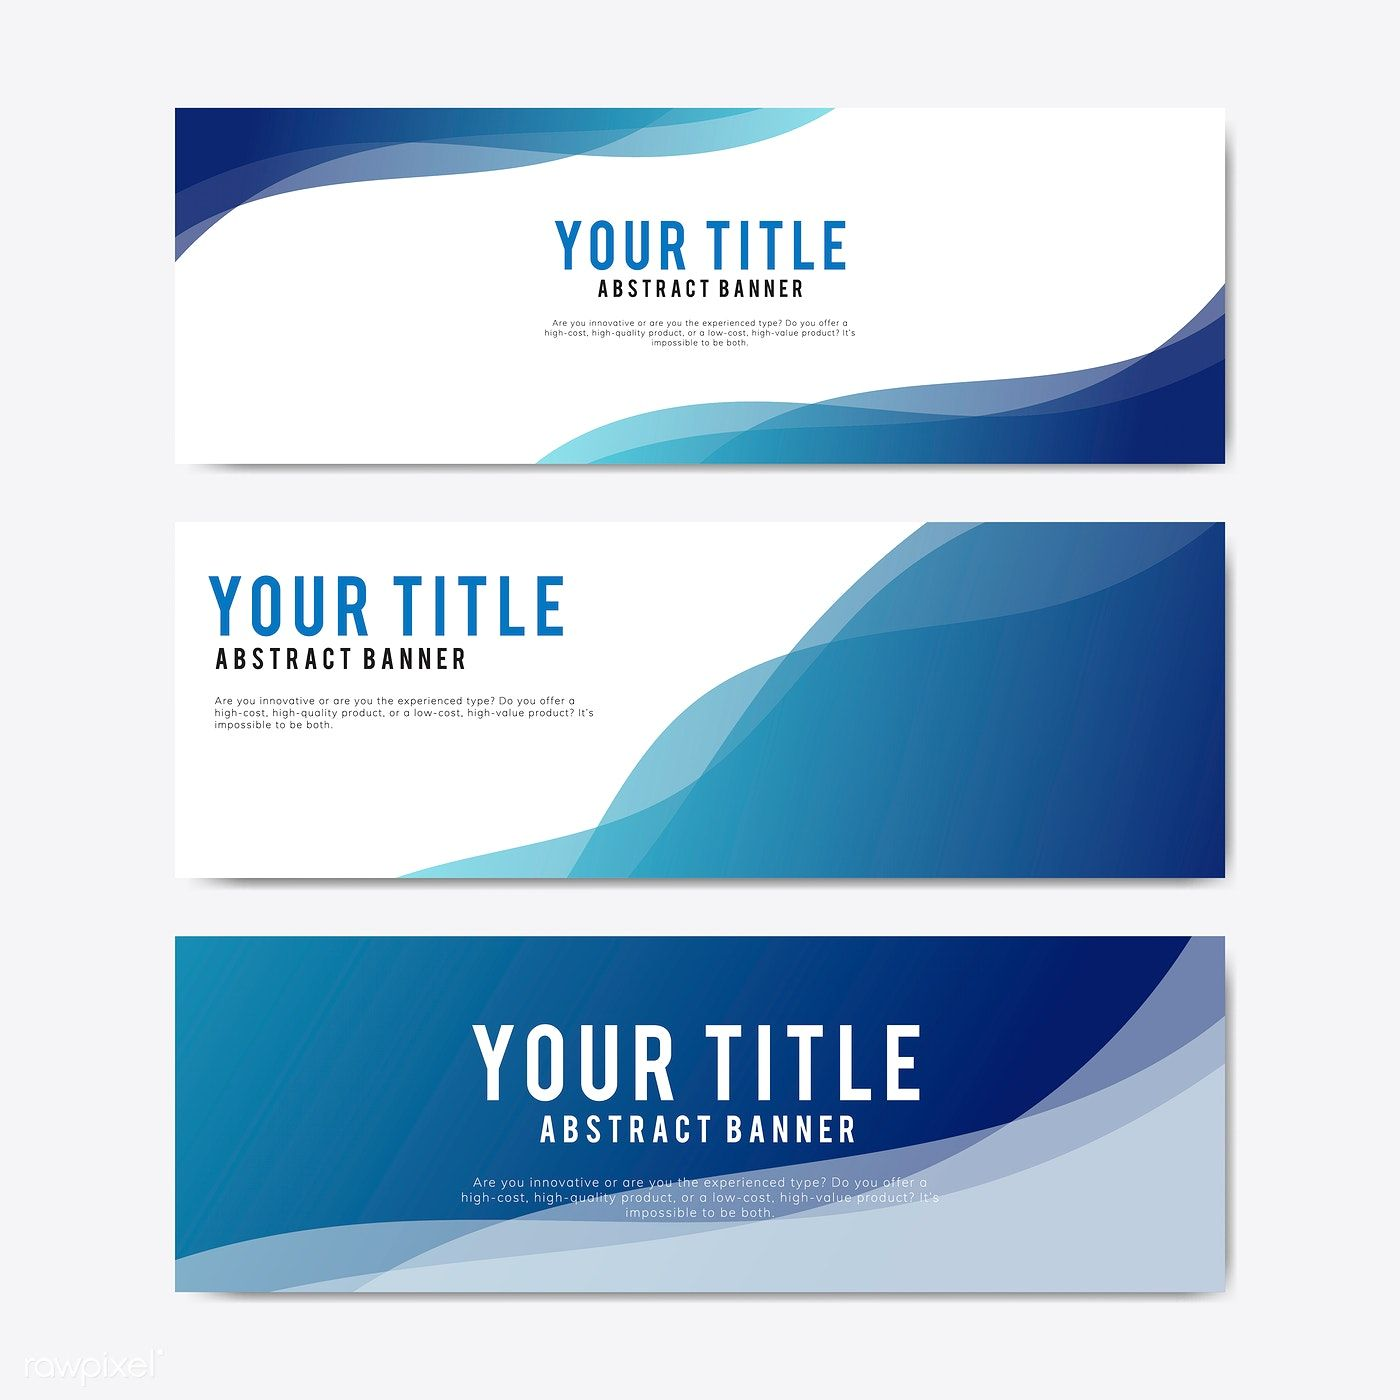 Free Banner Images